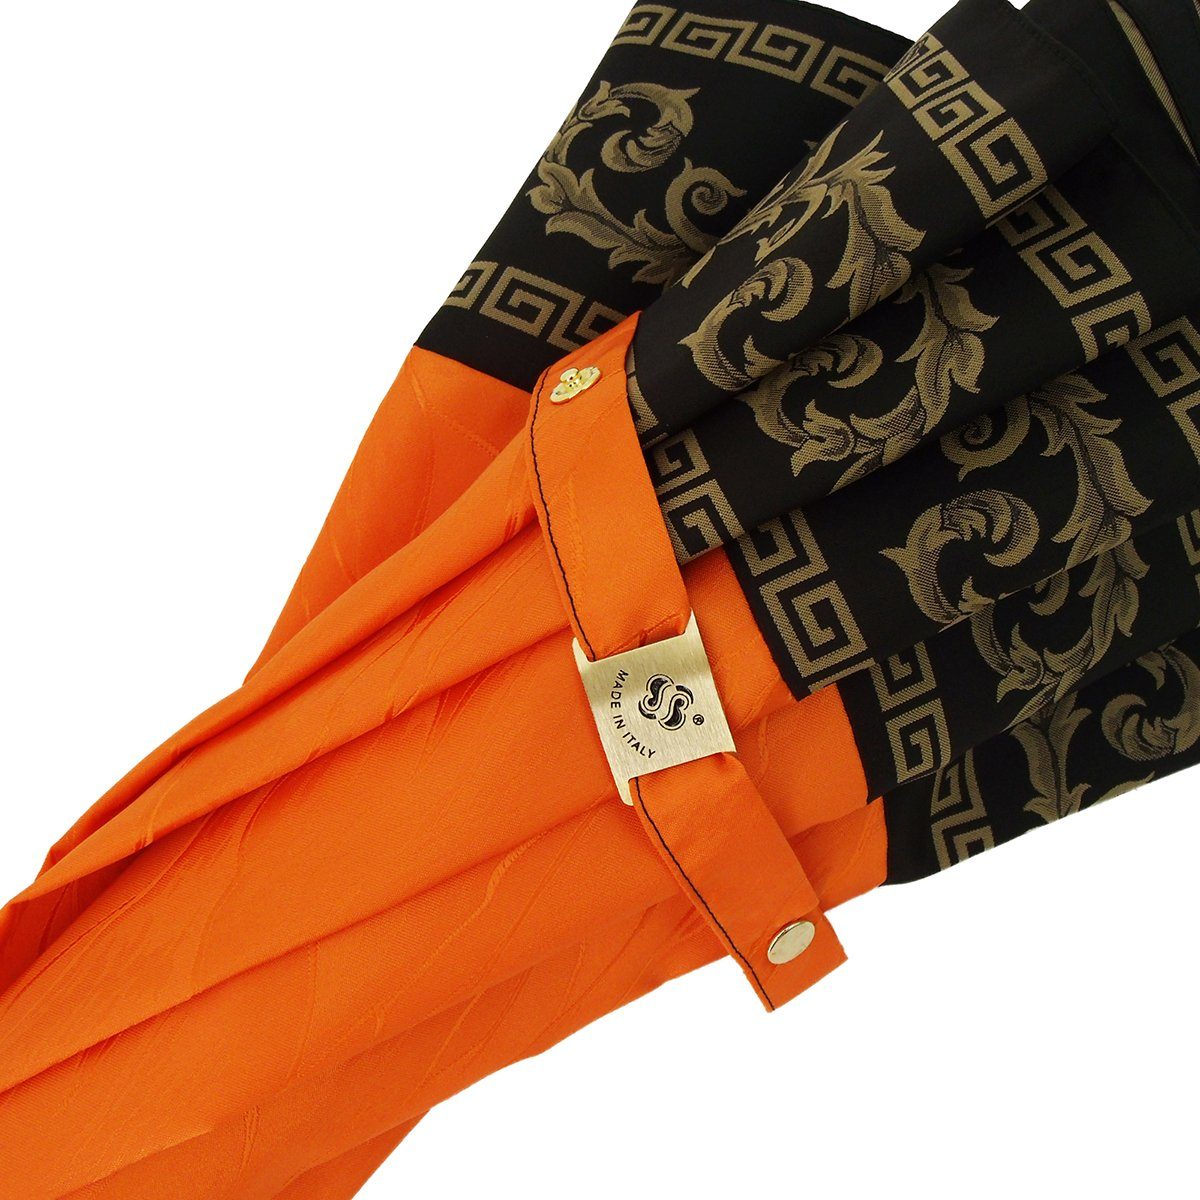 New il Marchesato Orange Umbrella